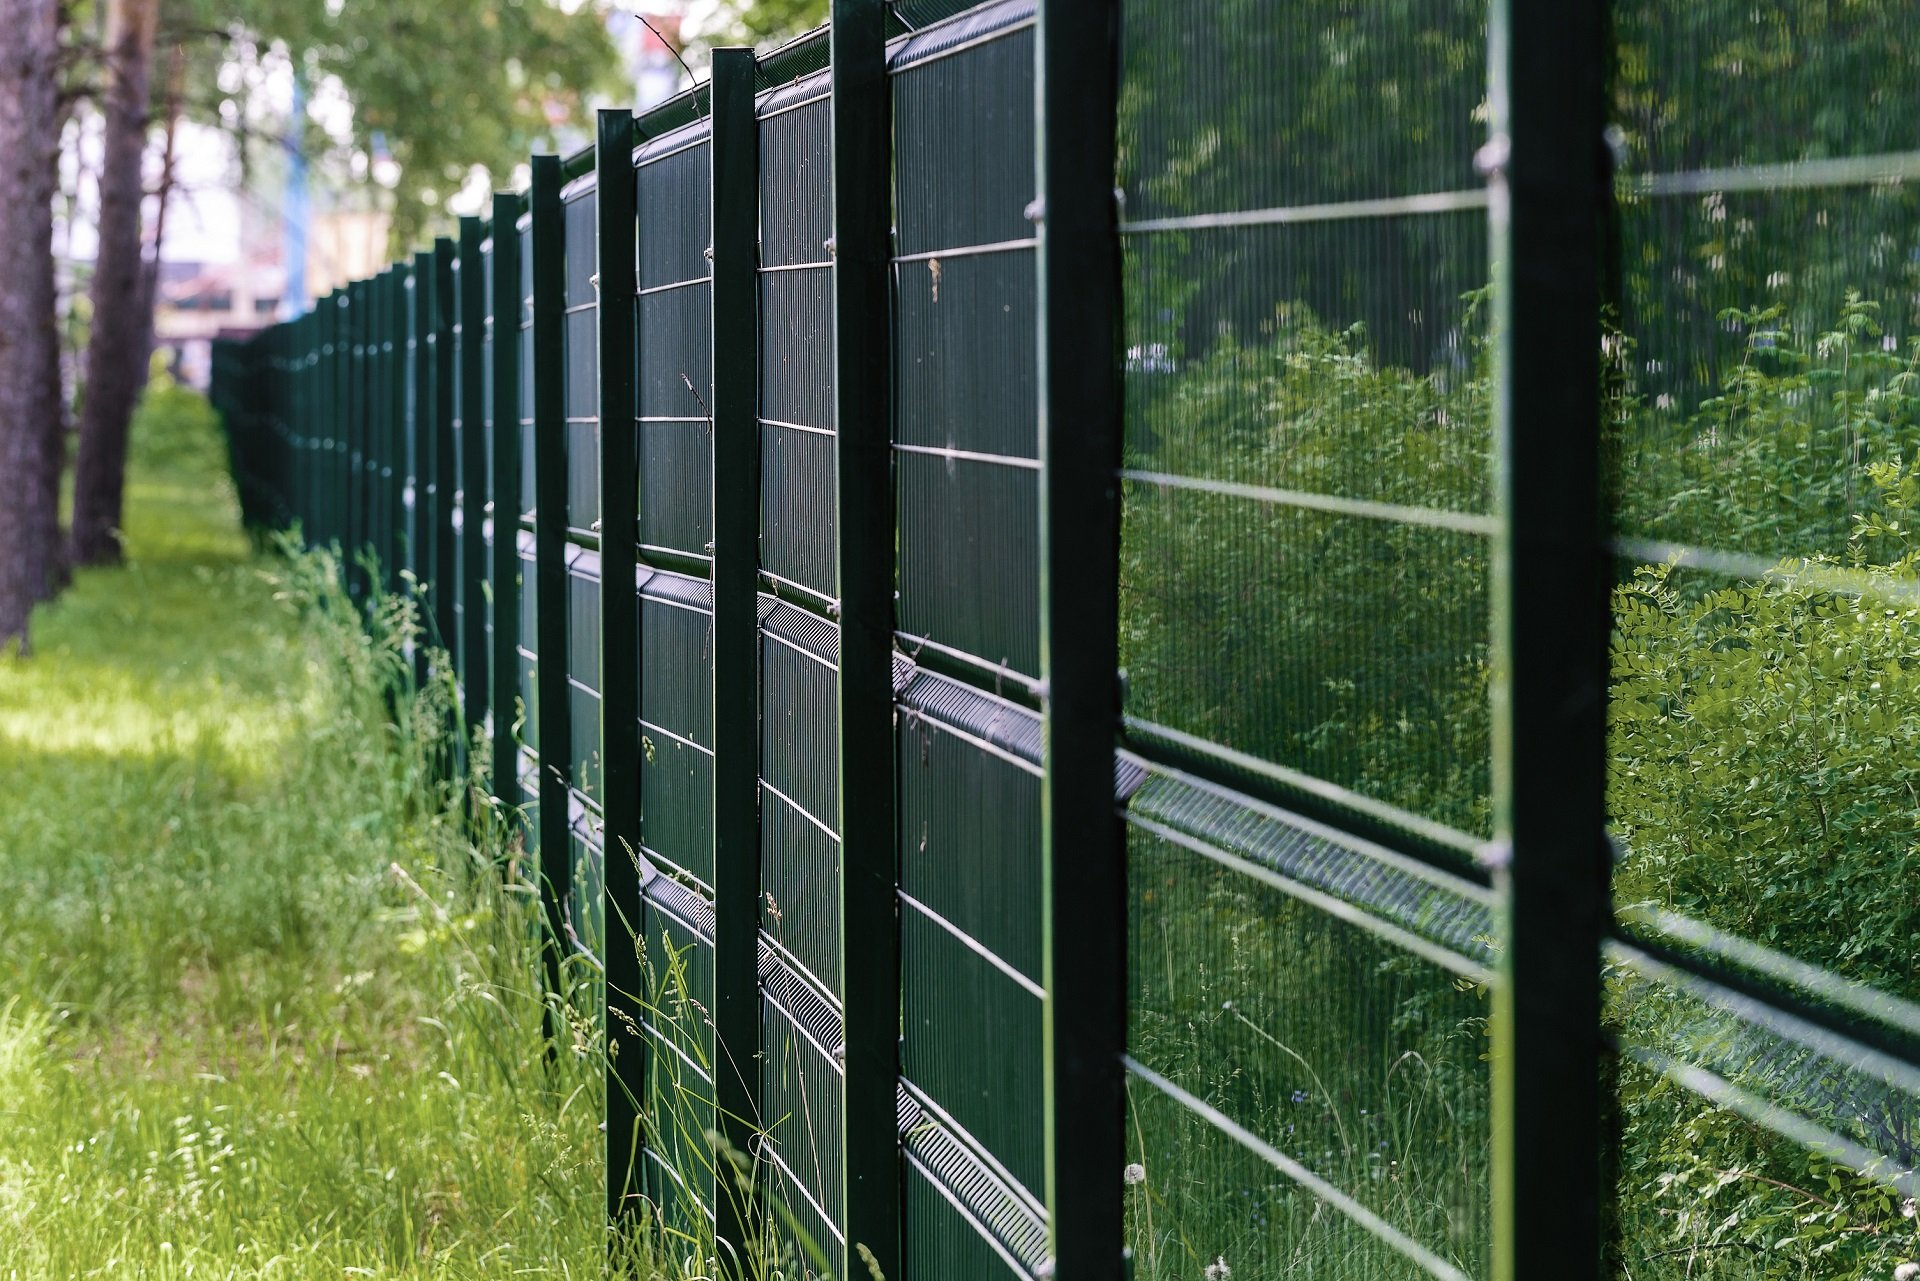 garden-fence-residential-chain-link-fencing-Quality-Chain-Link-Fencing-Vernon-Kelowna